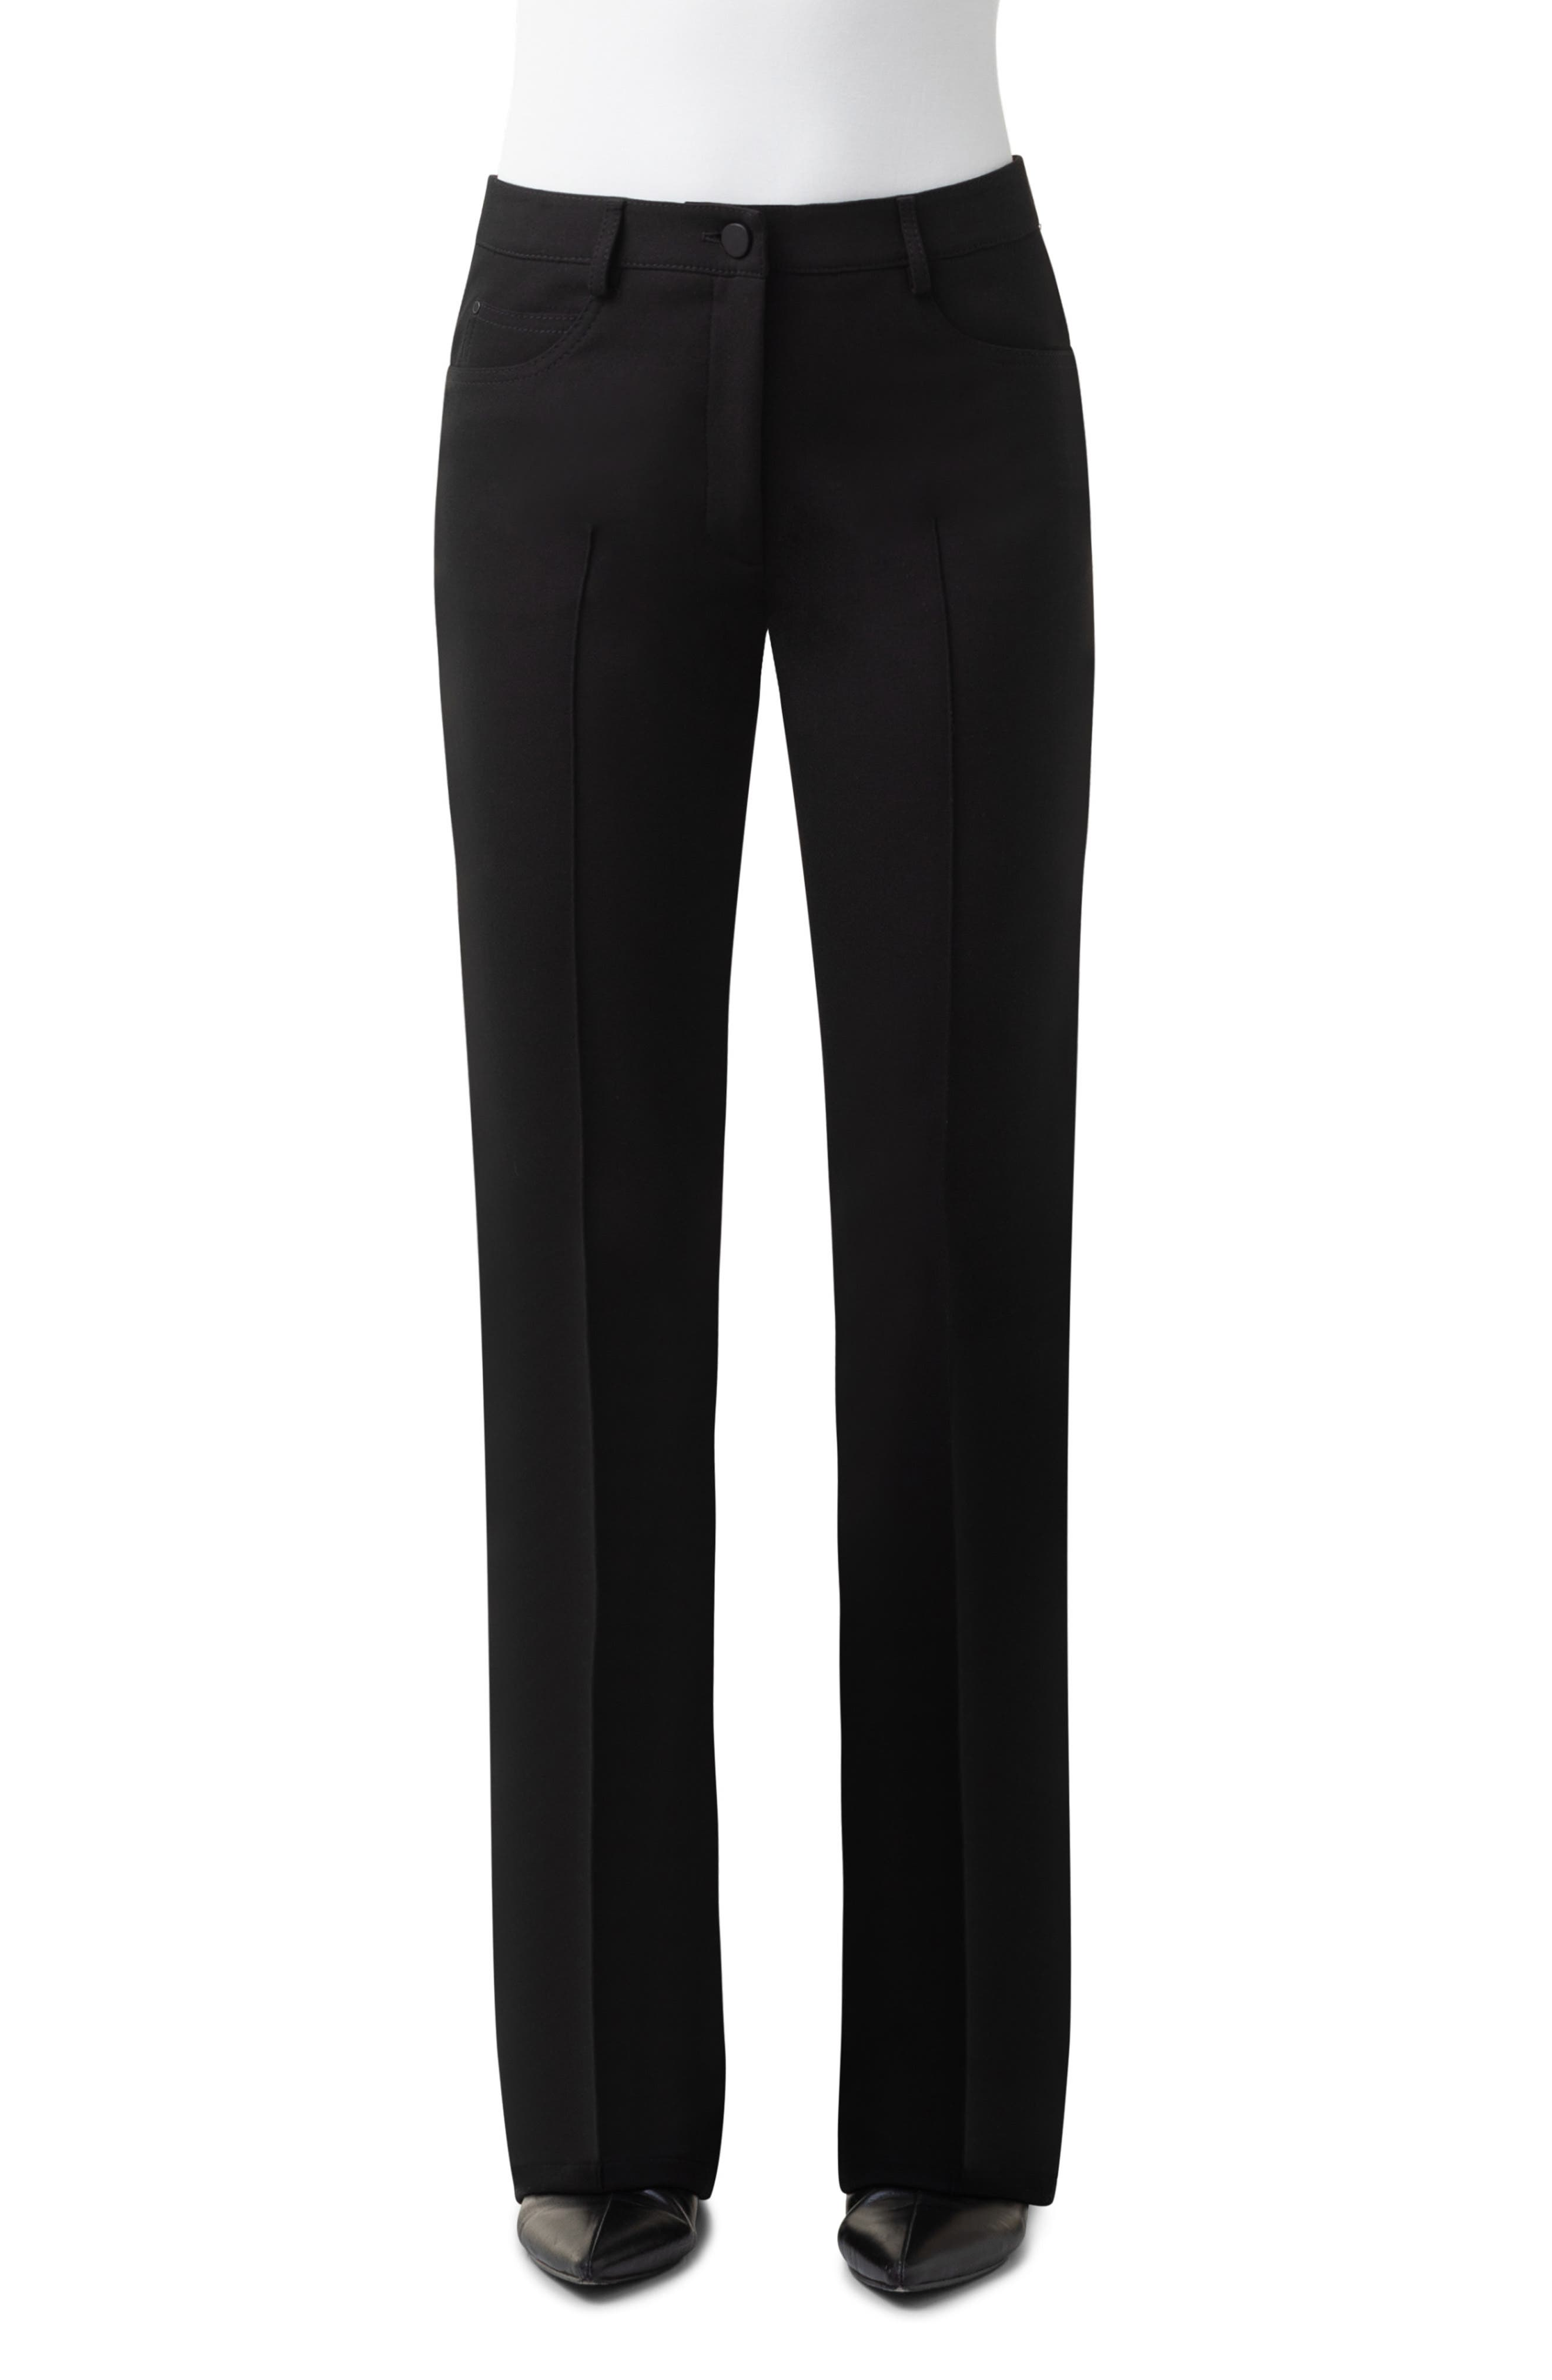 Center pintucks keep the look crisp on versatile crepe pants with a bootcut silhouette and an angled back yoke that provides shapely definition. Style Name: Akris Punto Faye Bootcut Crepe Pants. Style Number: 5999638. Available in stores.